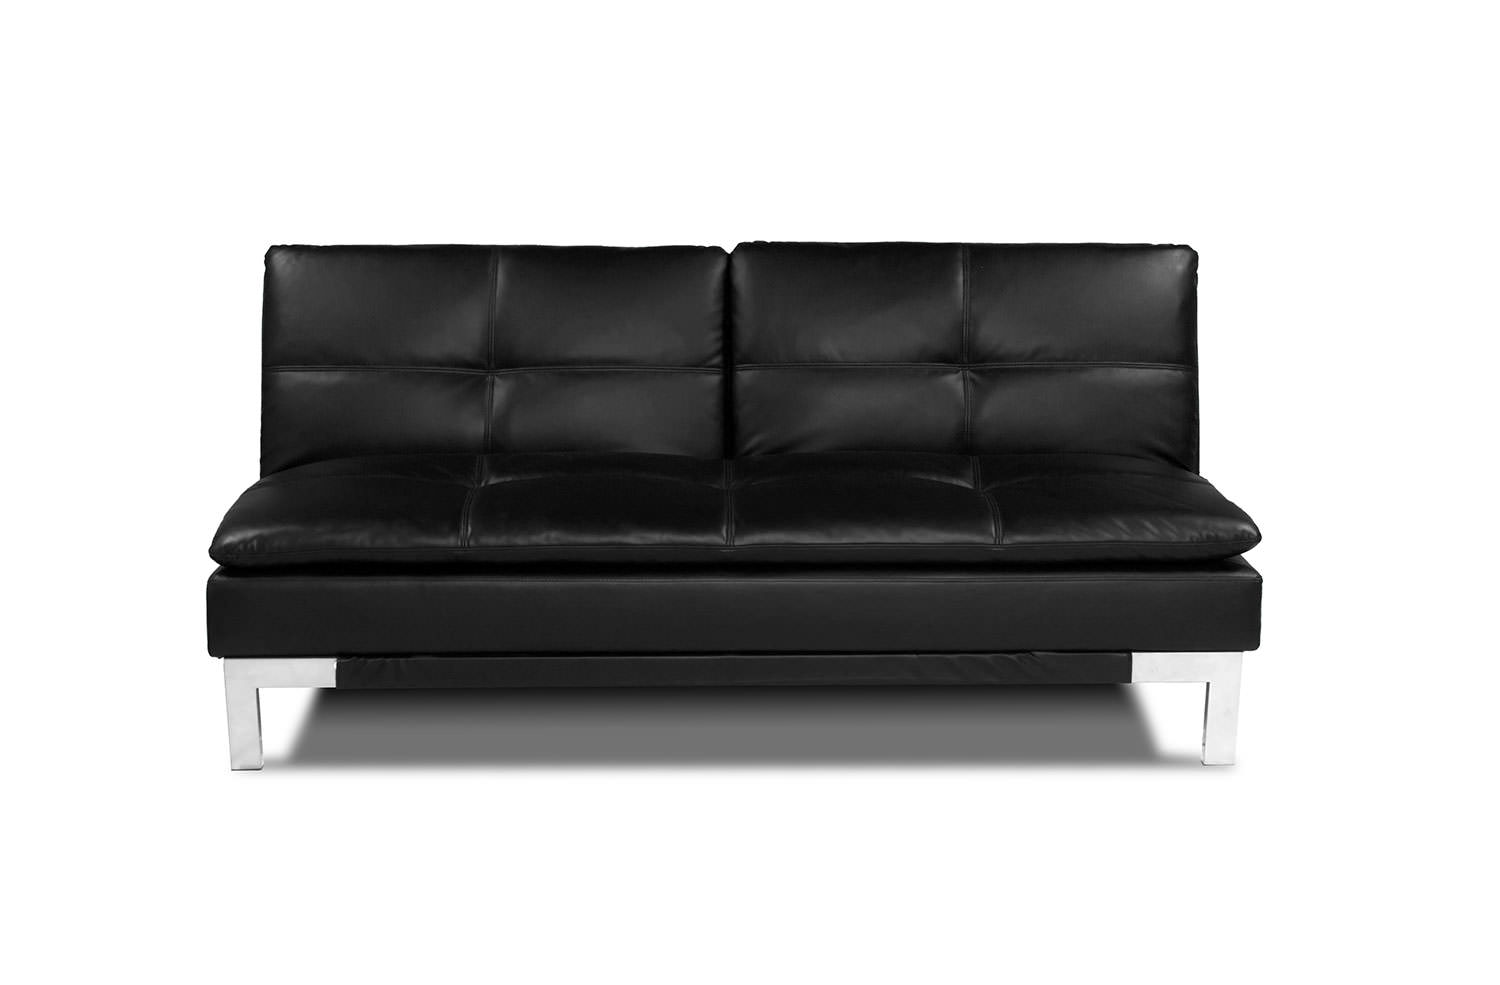 sectional convertible sofa dog bed skymall brenem black by serta lifestyle